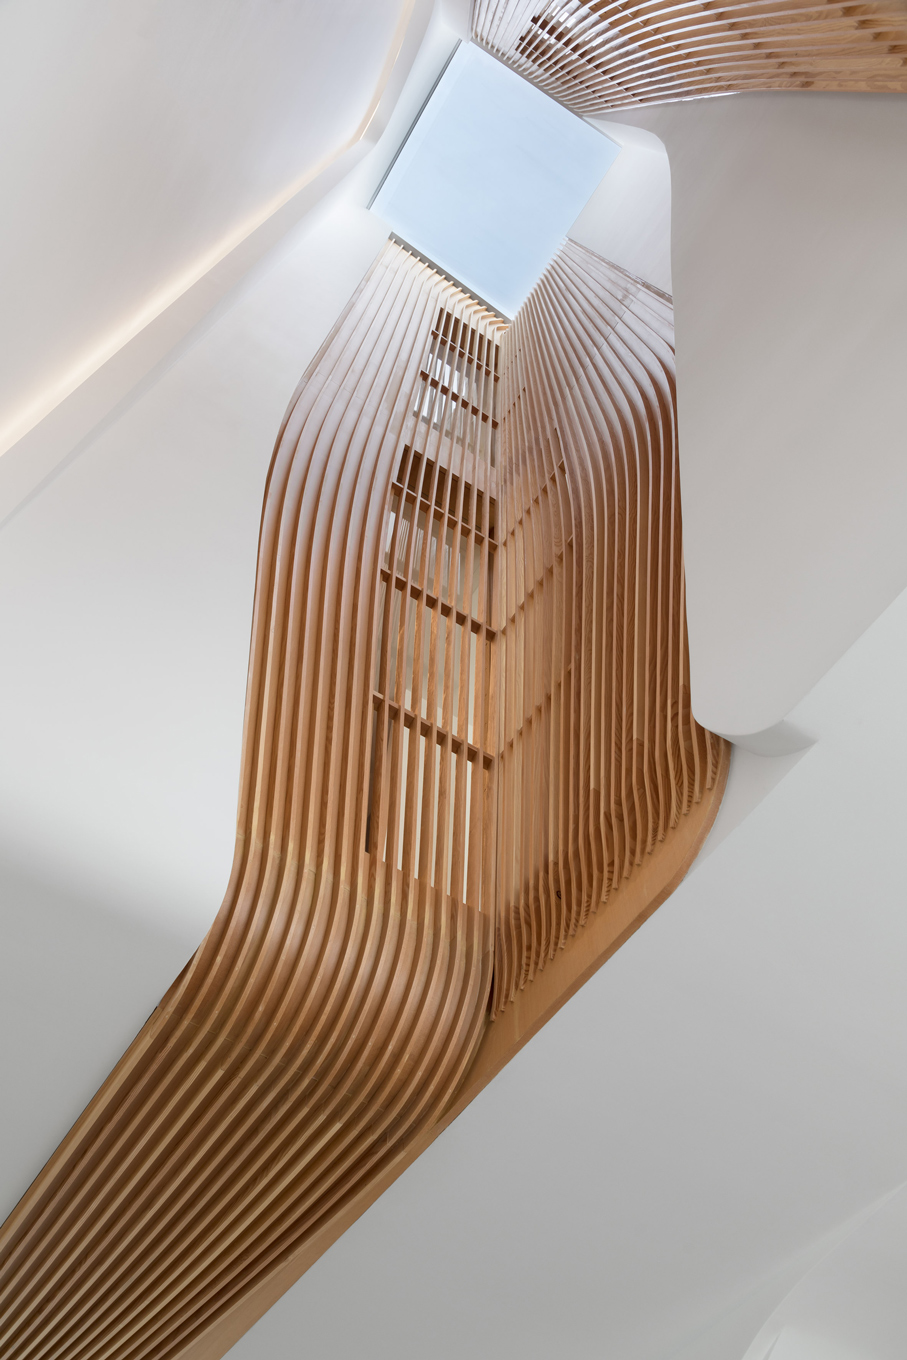 KTIRIO naaro architecture house london dezeen 01